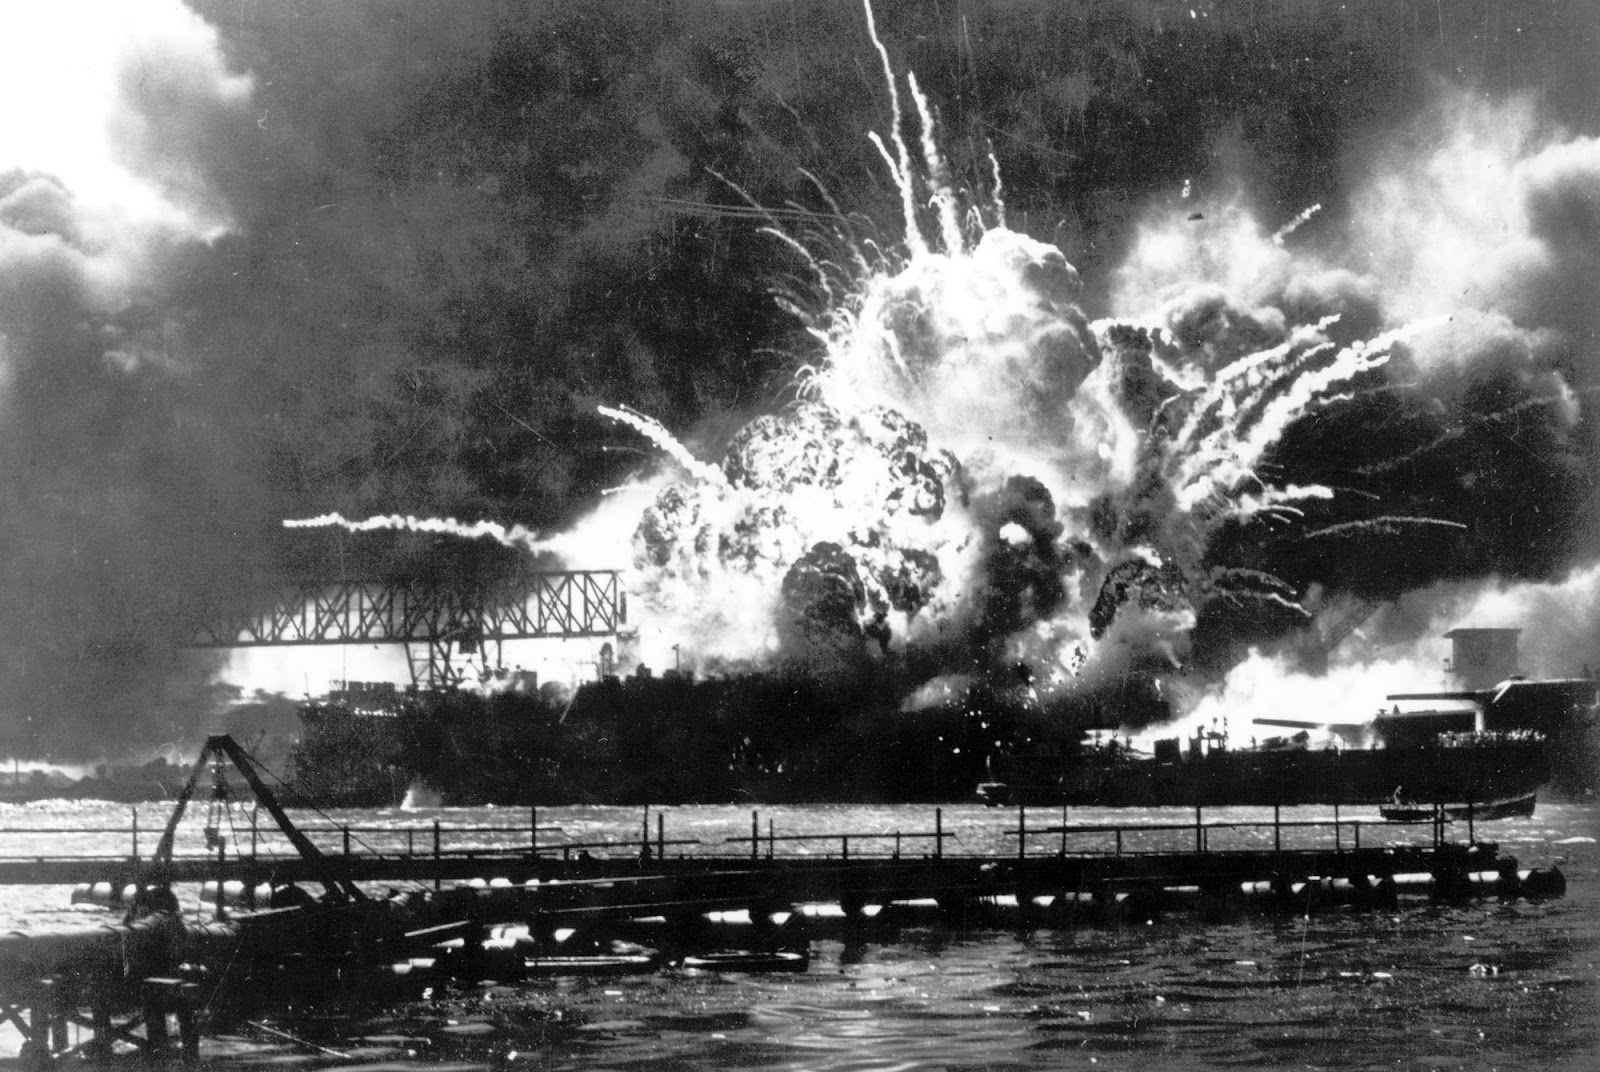 the attack on pearl harbor in 1941 and the reasons behind it Why did the japanese attack pearl harbor but not anywhere else in the us first answer: why did the japanese attack pearl harbor in 1941 briefly.